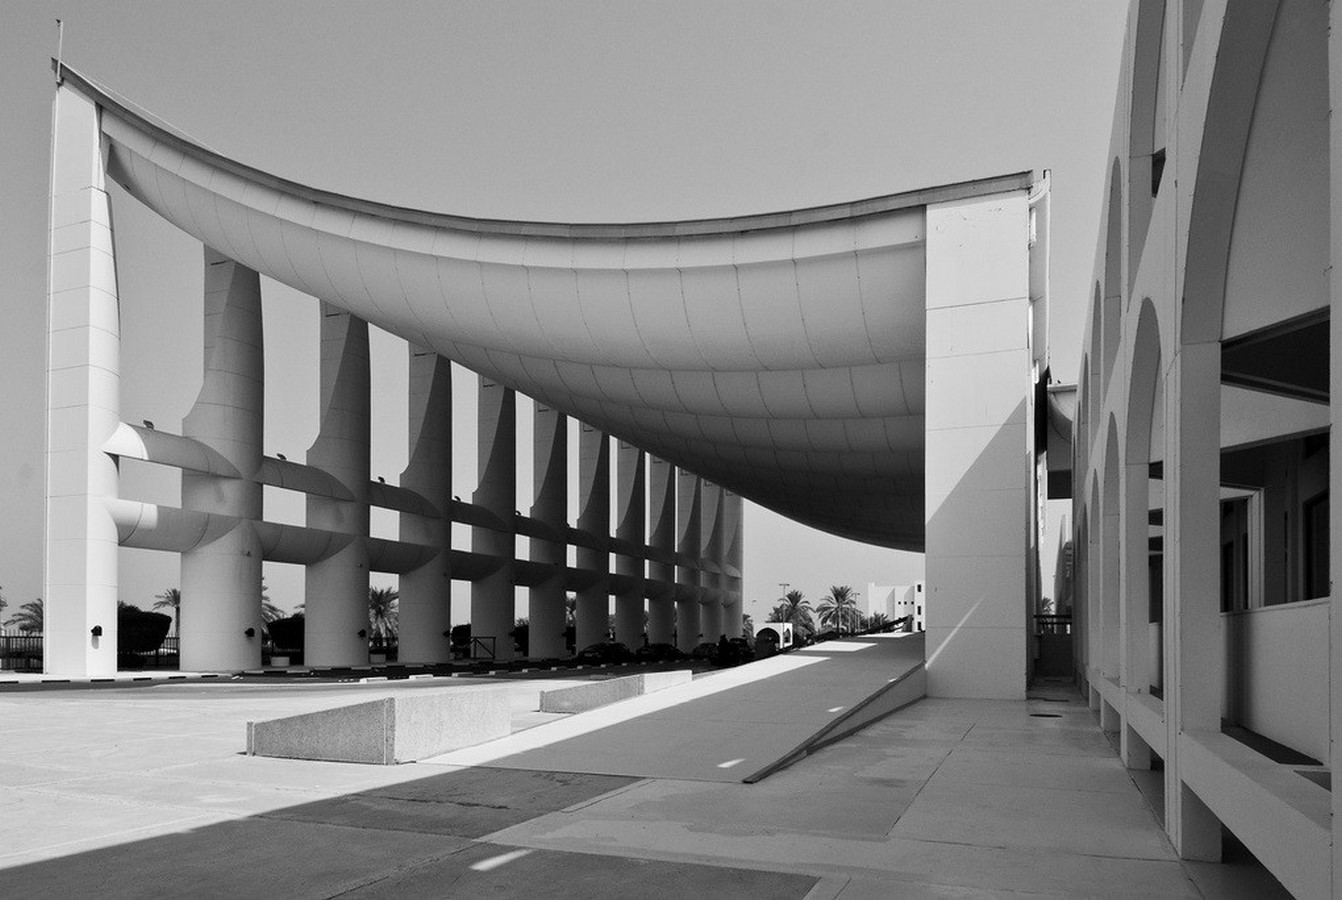 Kuwait National Assembly Building by Jørn Utzon: Architecture inspired from Bazaars - Sheet10